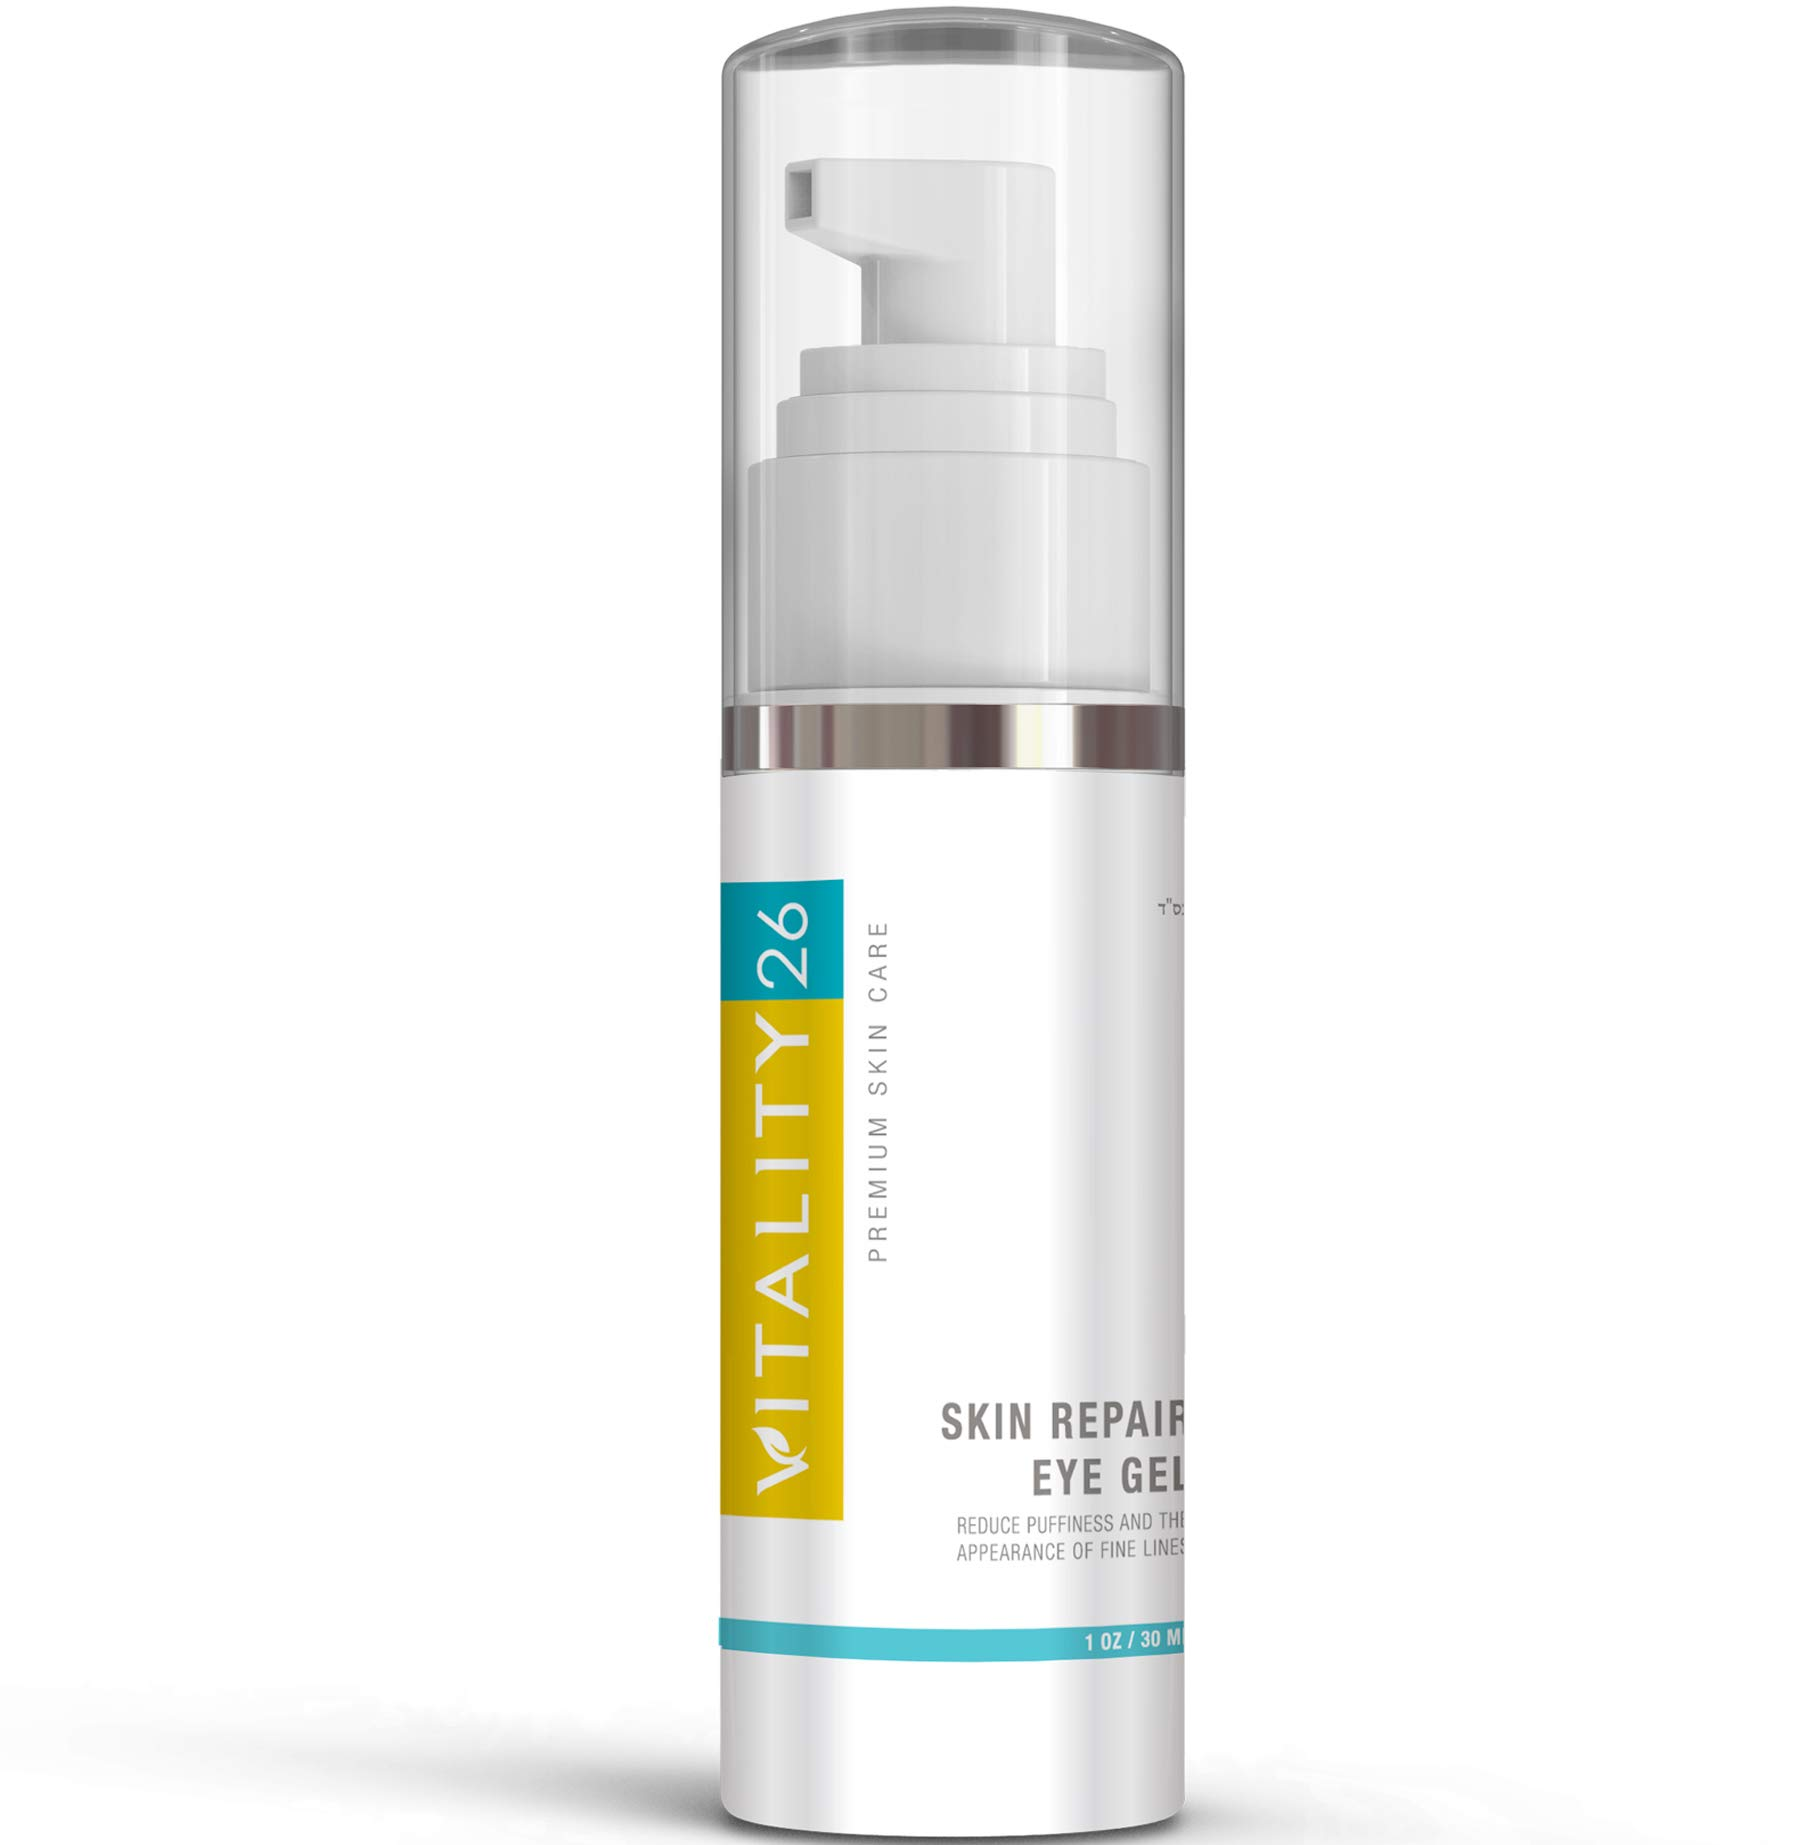 Vitality26 Dark Circle Eye Treatment - Under Eye Gel Reduces Bags and Puffiness Around Eyes - Made with Orange Sap, Avocado and Repair Complex - Premium Quality, Natural Ingredients